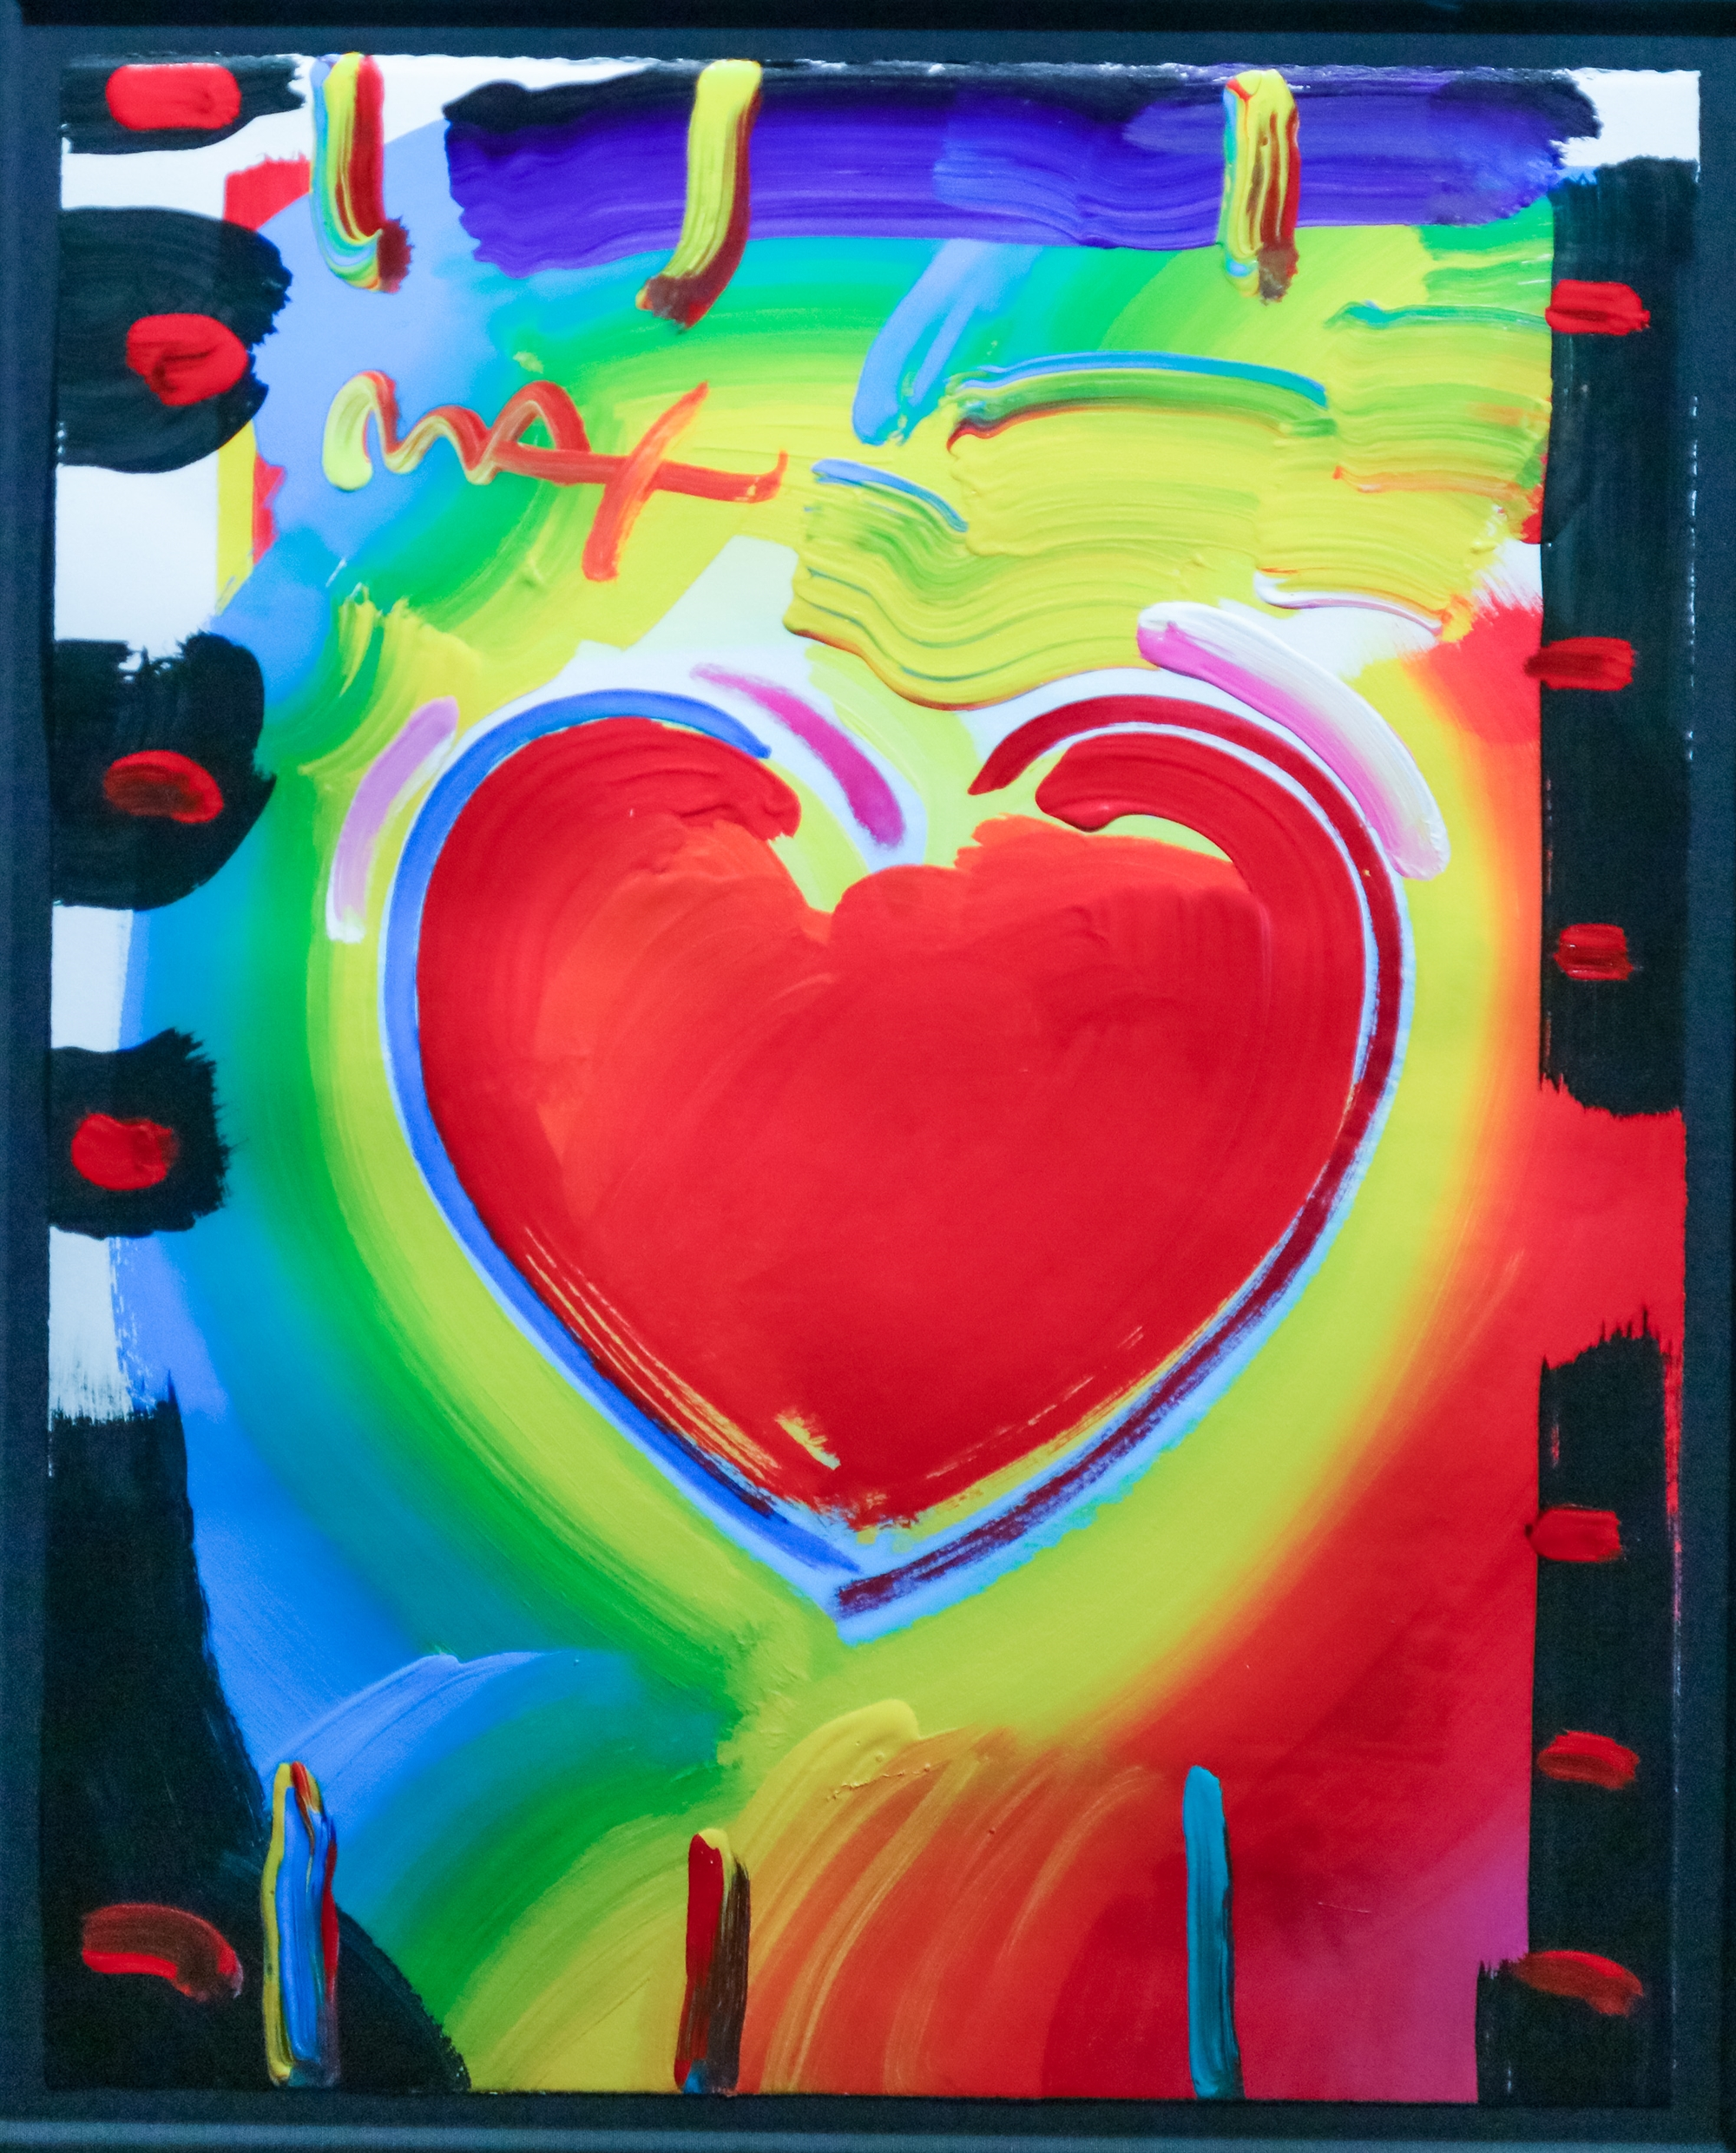 Heart Series by Peter Max